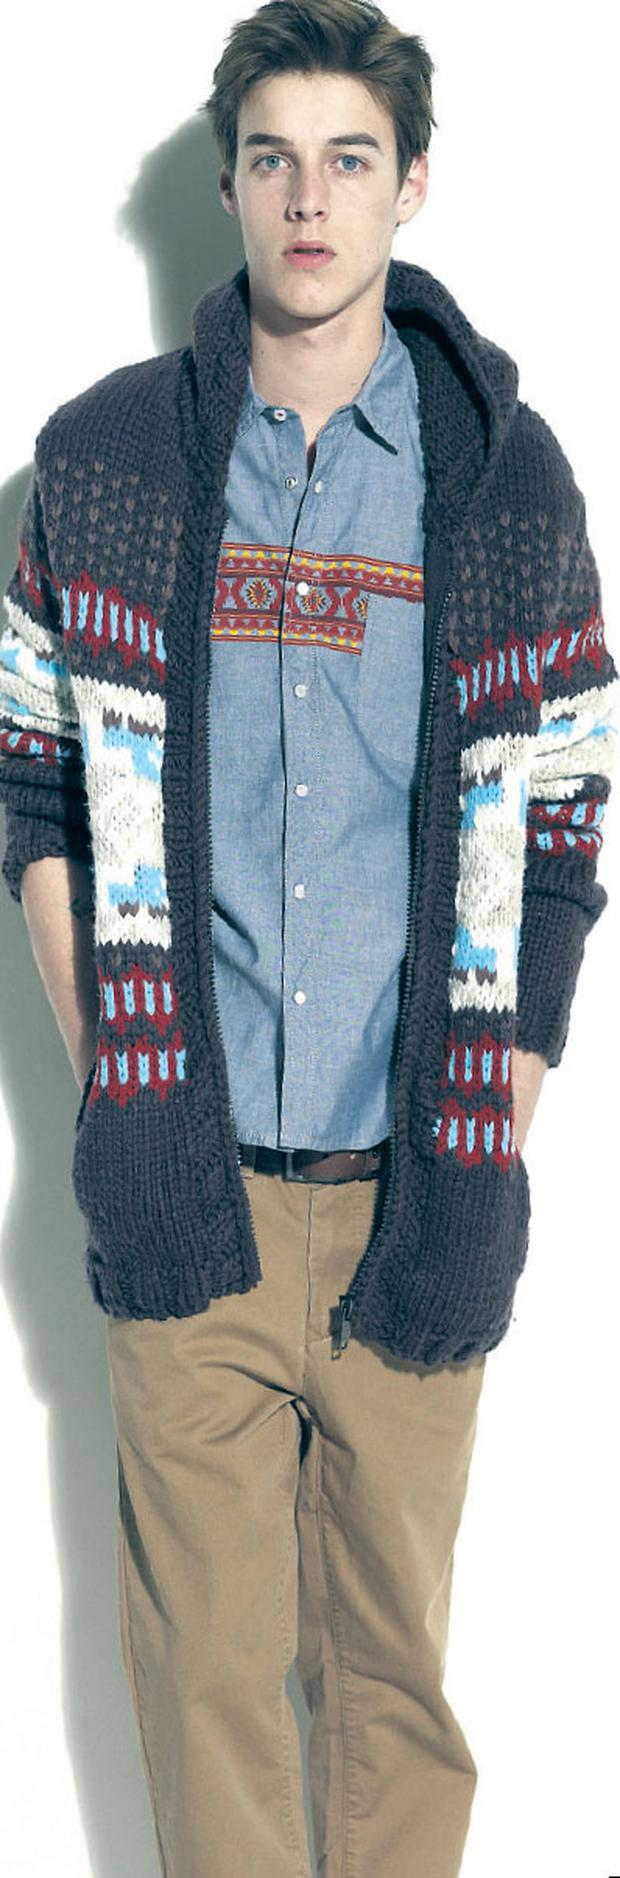 Chunky-knit cardigan, €55, Aztec shirt, €35, and chinos, €35, all New Look